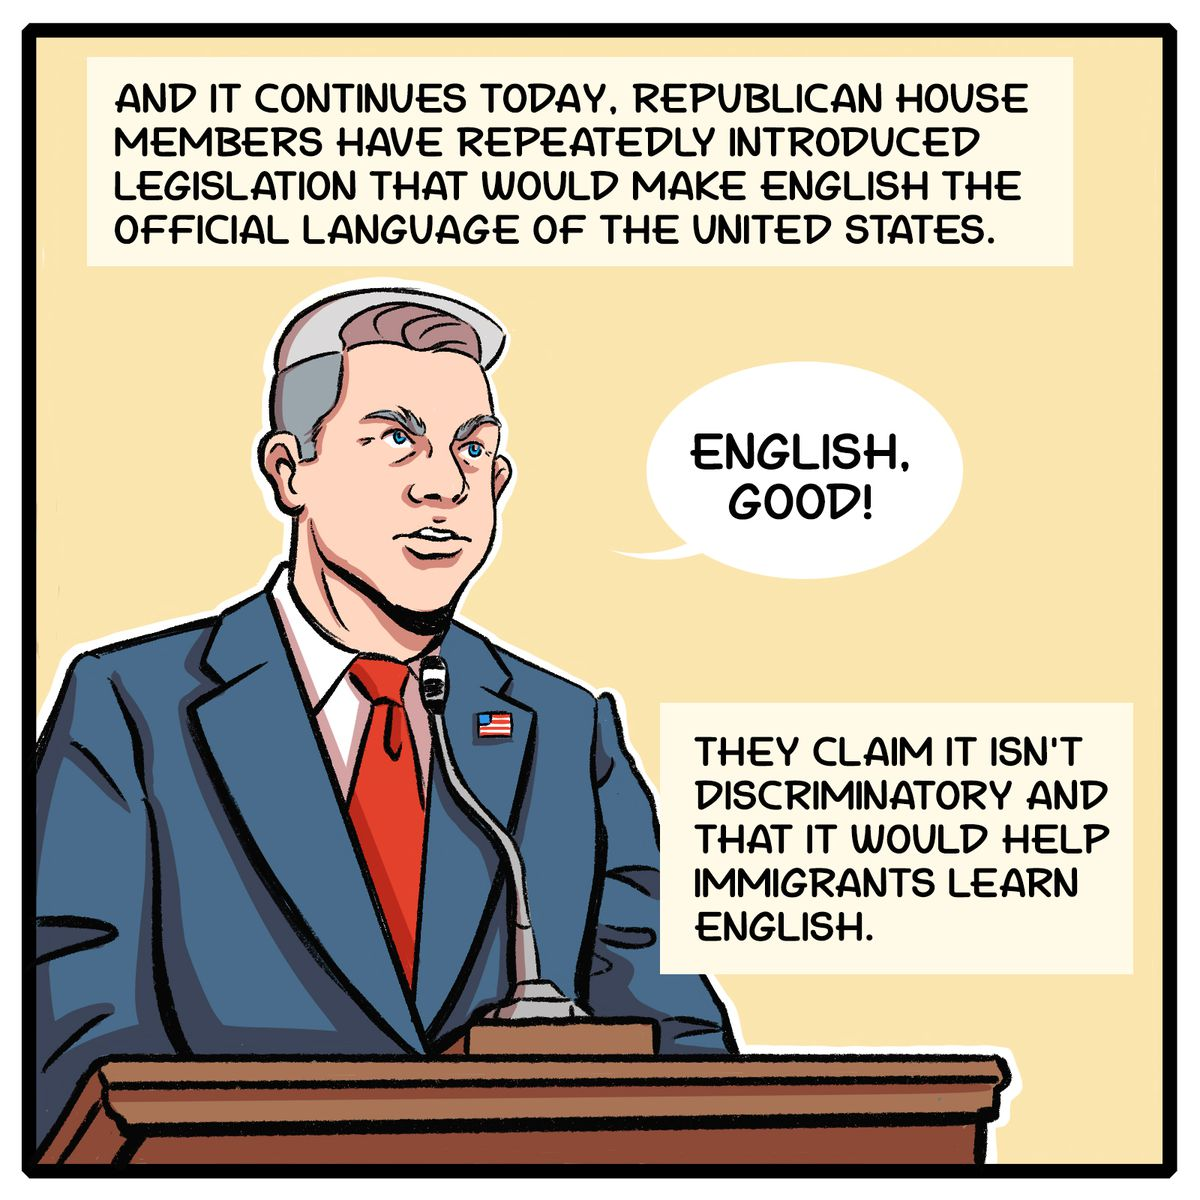 And it continues today. Republican House members have repeatedly introduced legislation that would make English the official language of the United States. They claim it isn't discriminatory and that it would help immigrants learn English.